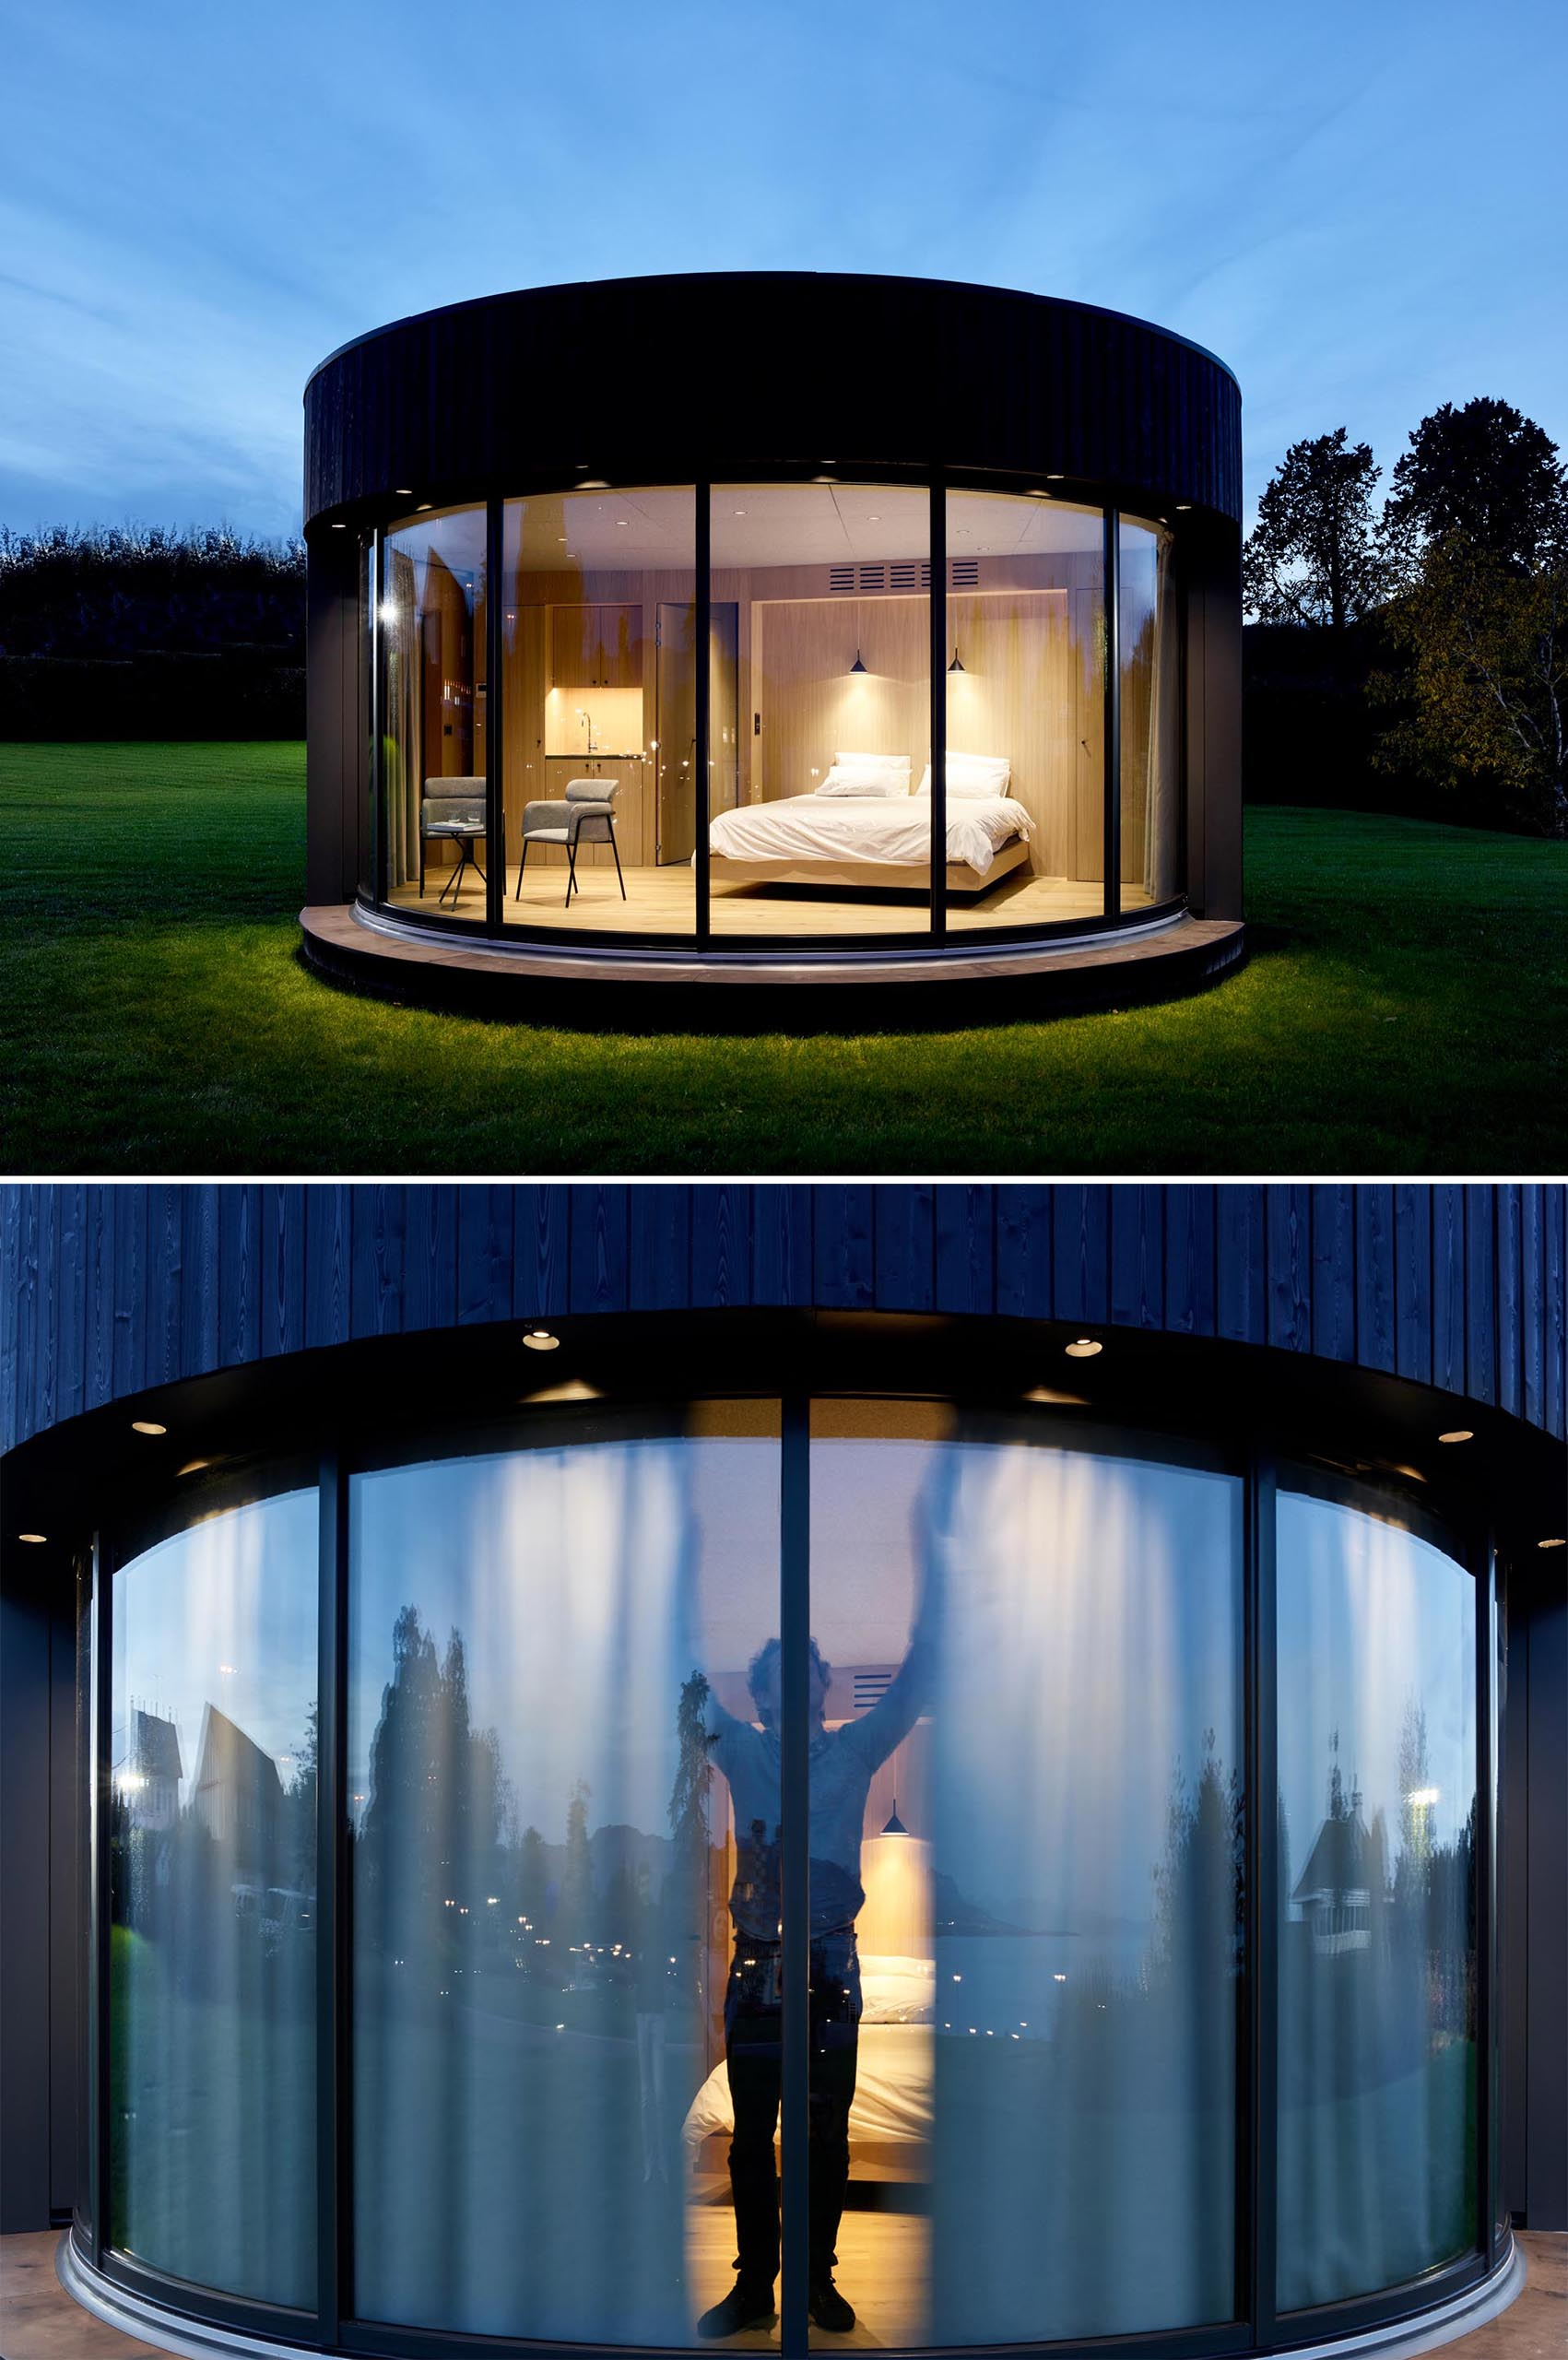 A modern round cabin with a curved glass wall.